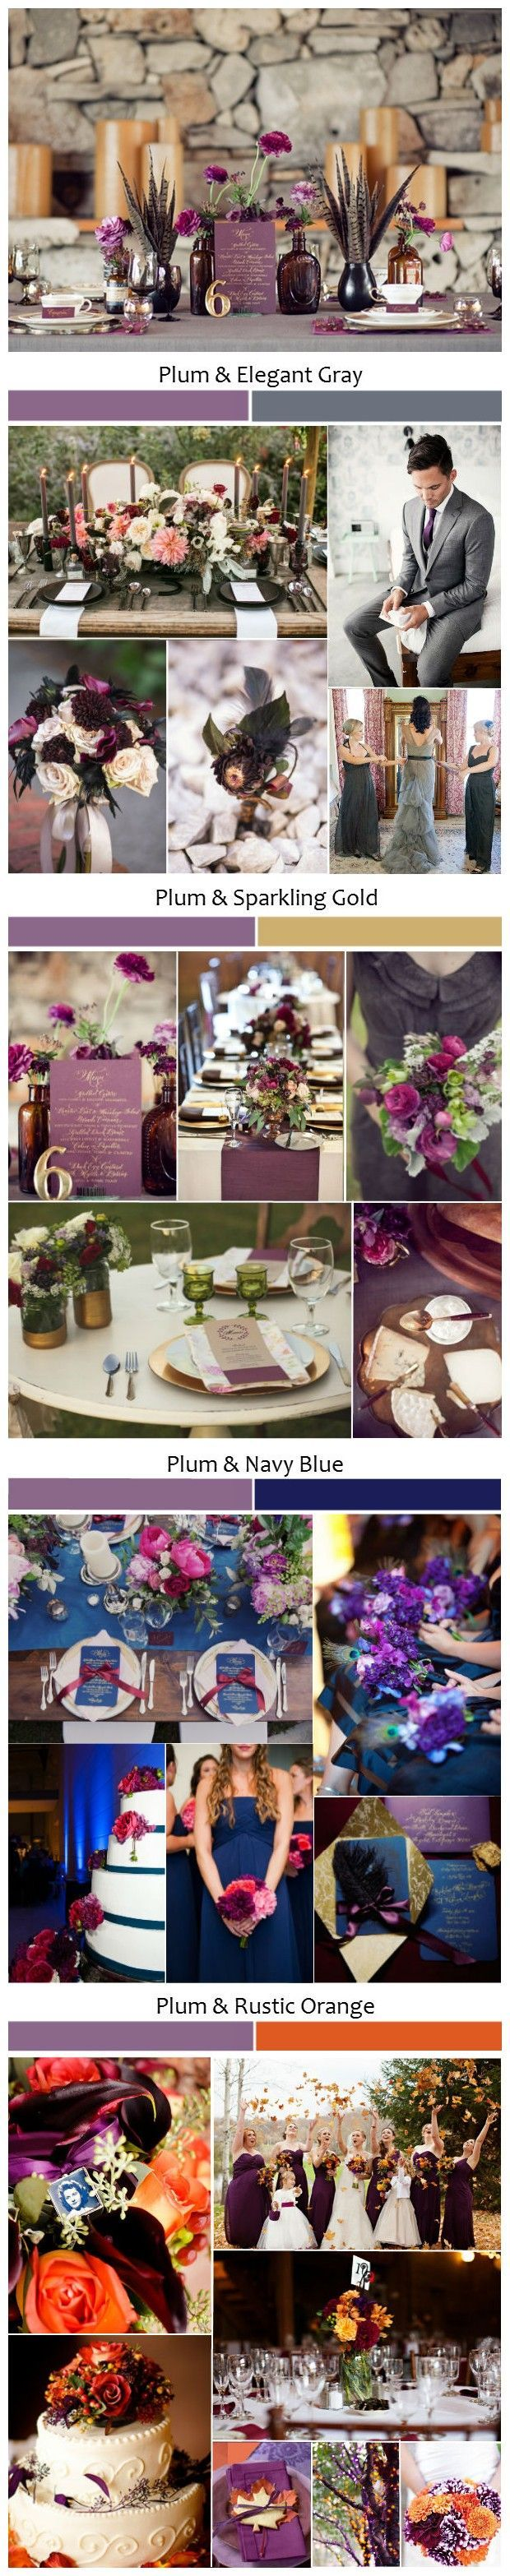 Top 5 Rustic Shades of Plum Wedding Ideas...plum so much elegant and class than just purple lol